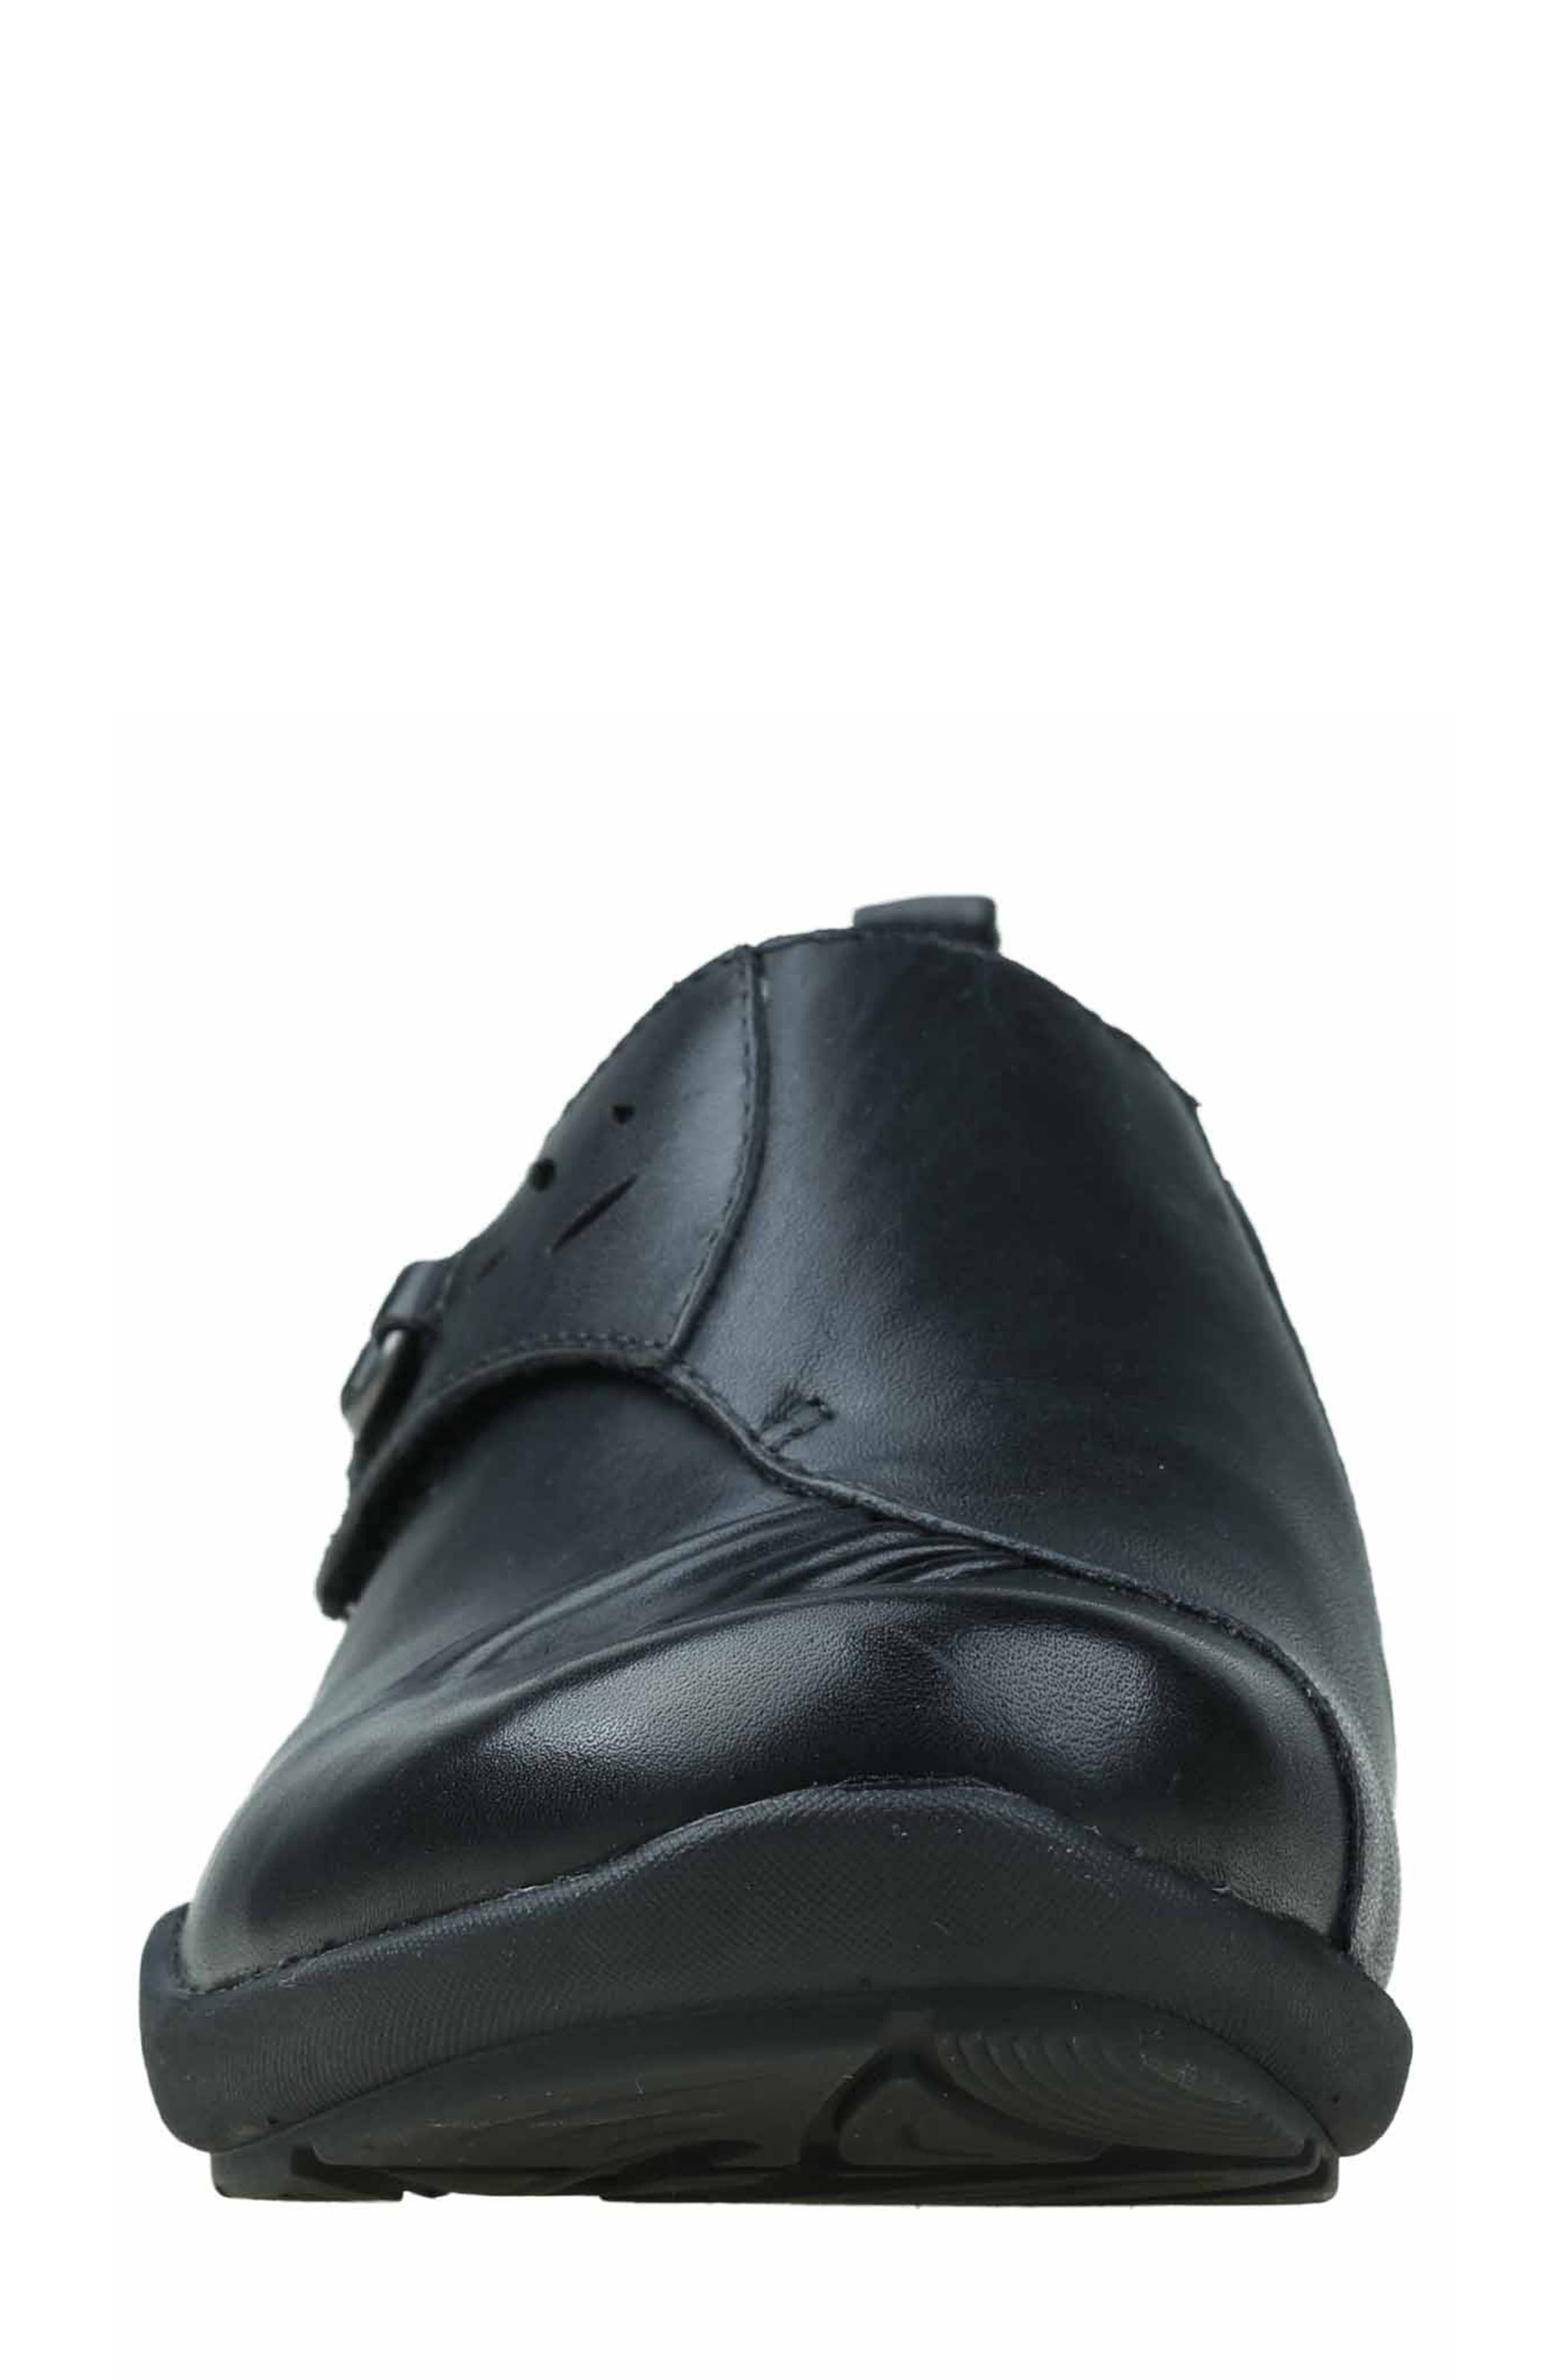 Amity Loafer,                             Alternate thumbnail 4, color,                             012